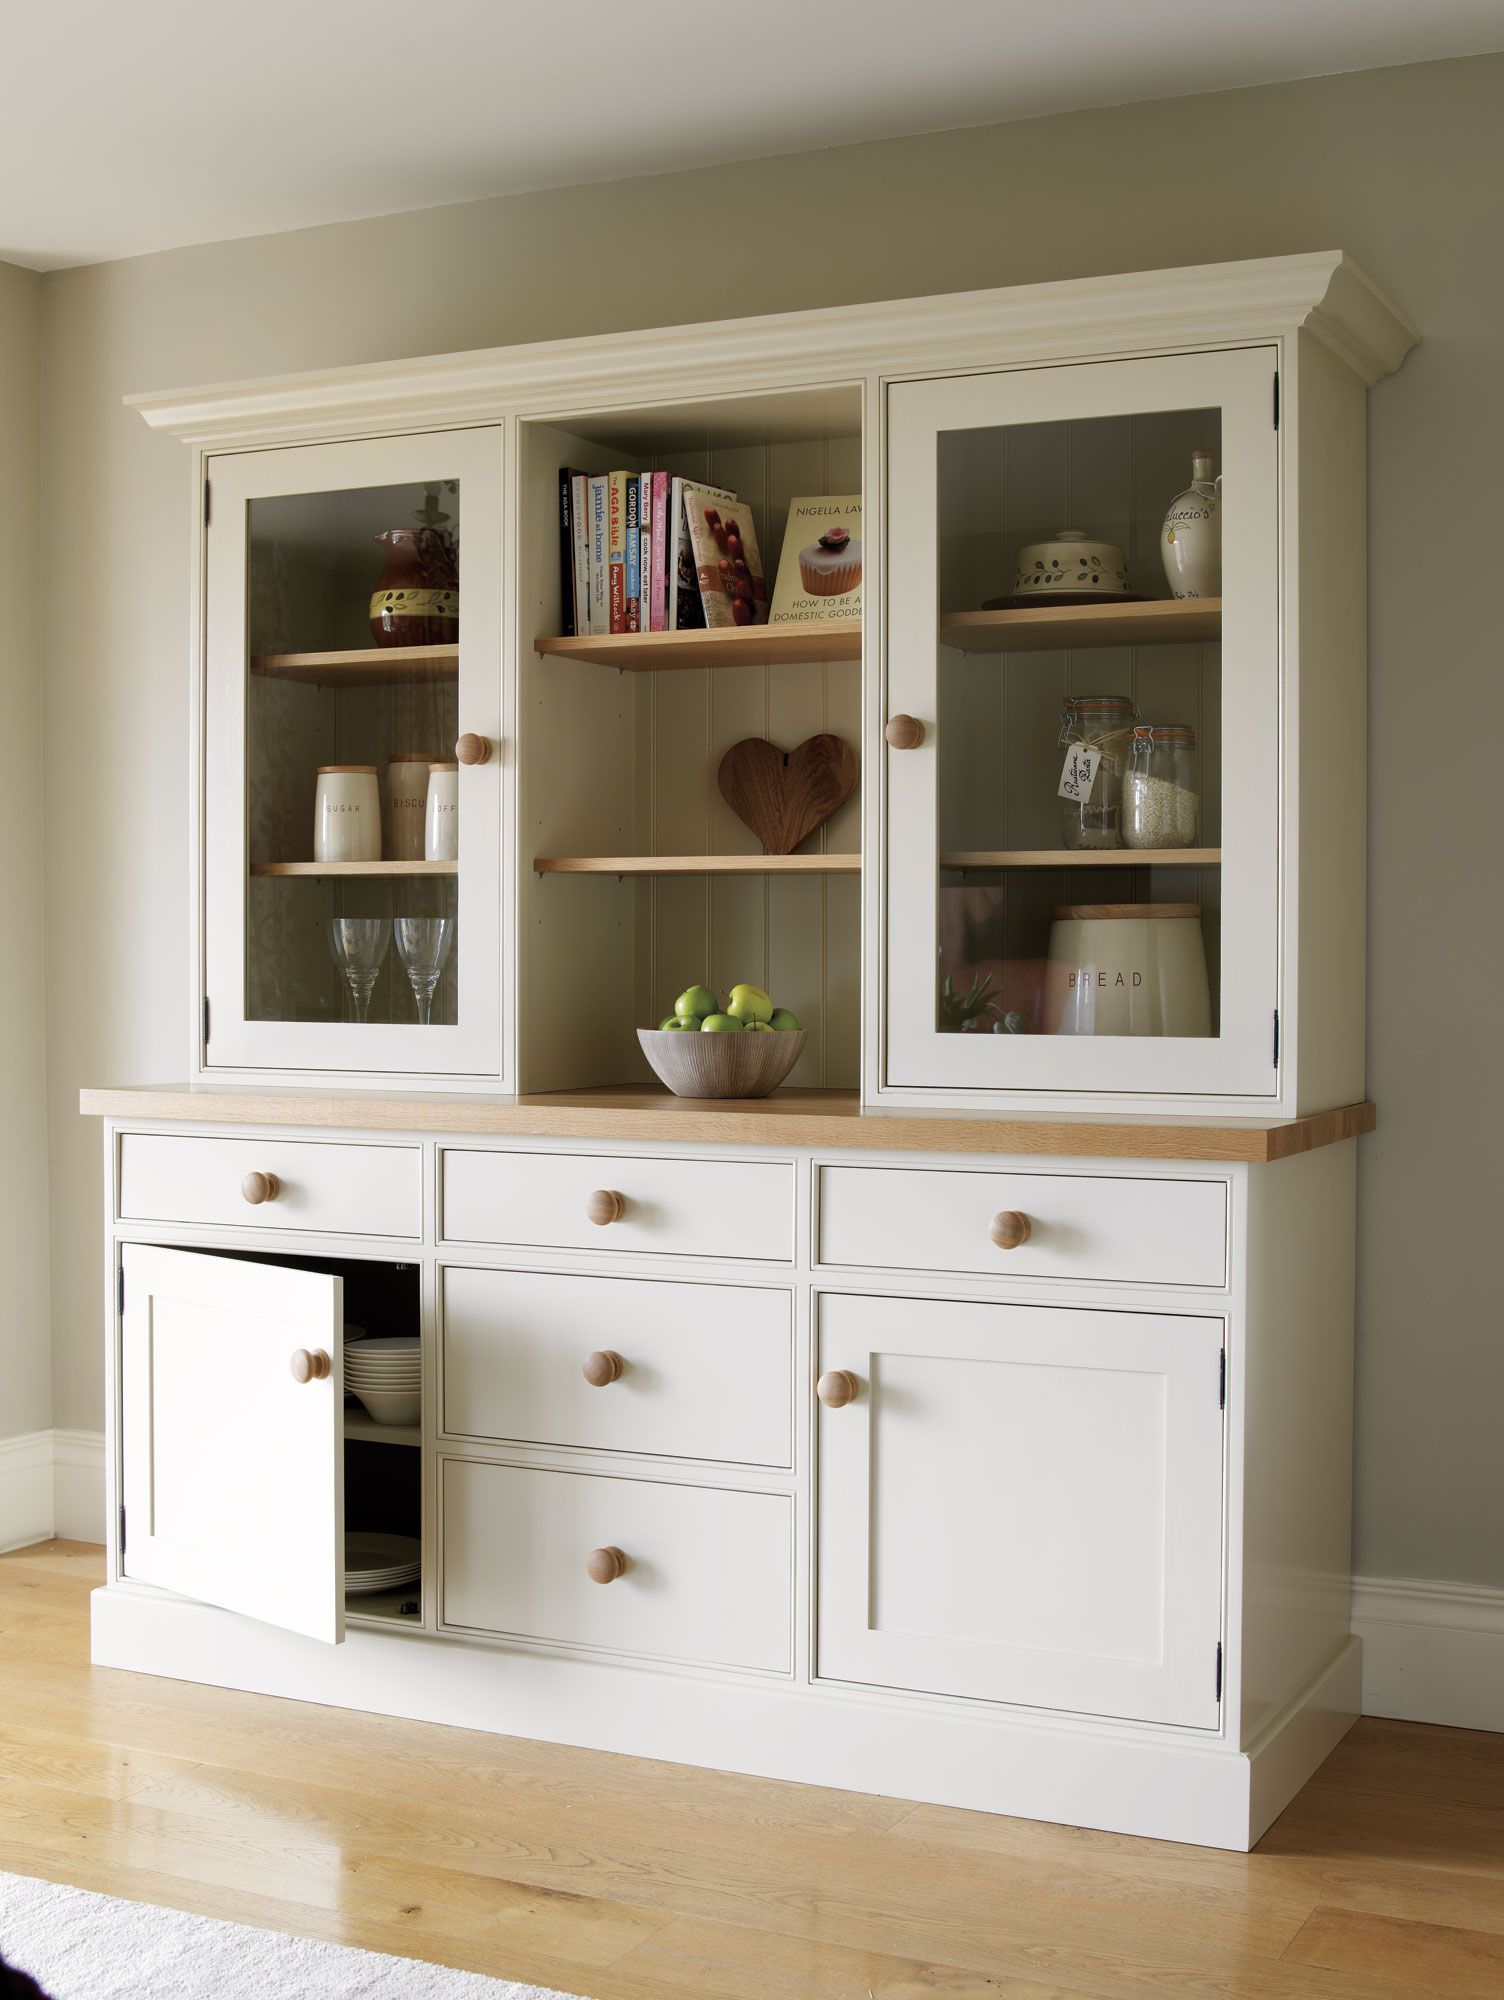 White Kitchen Dresser lrg kitchen idea triple dresser … | pinteres…